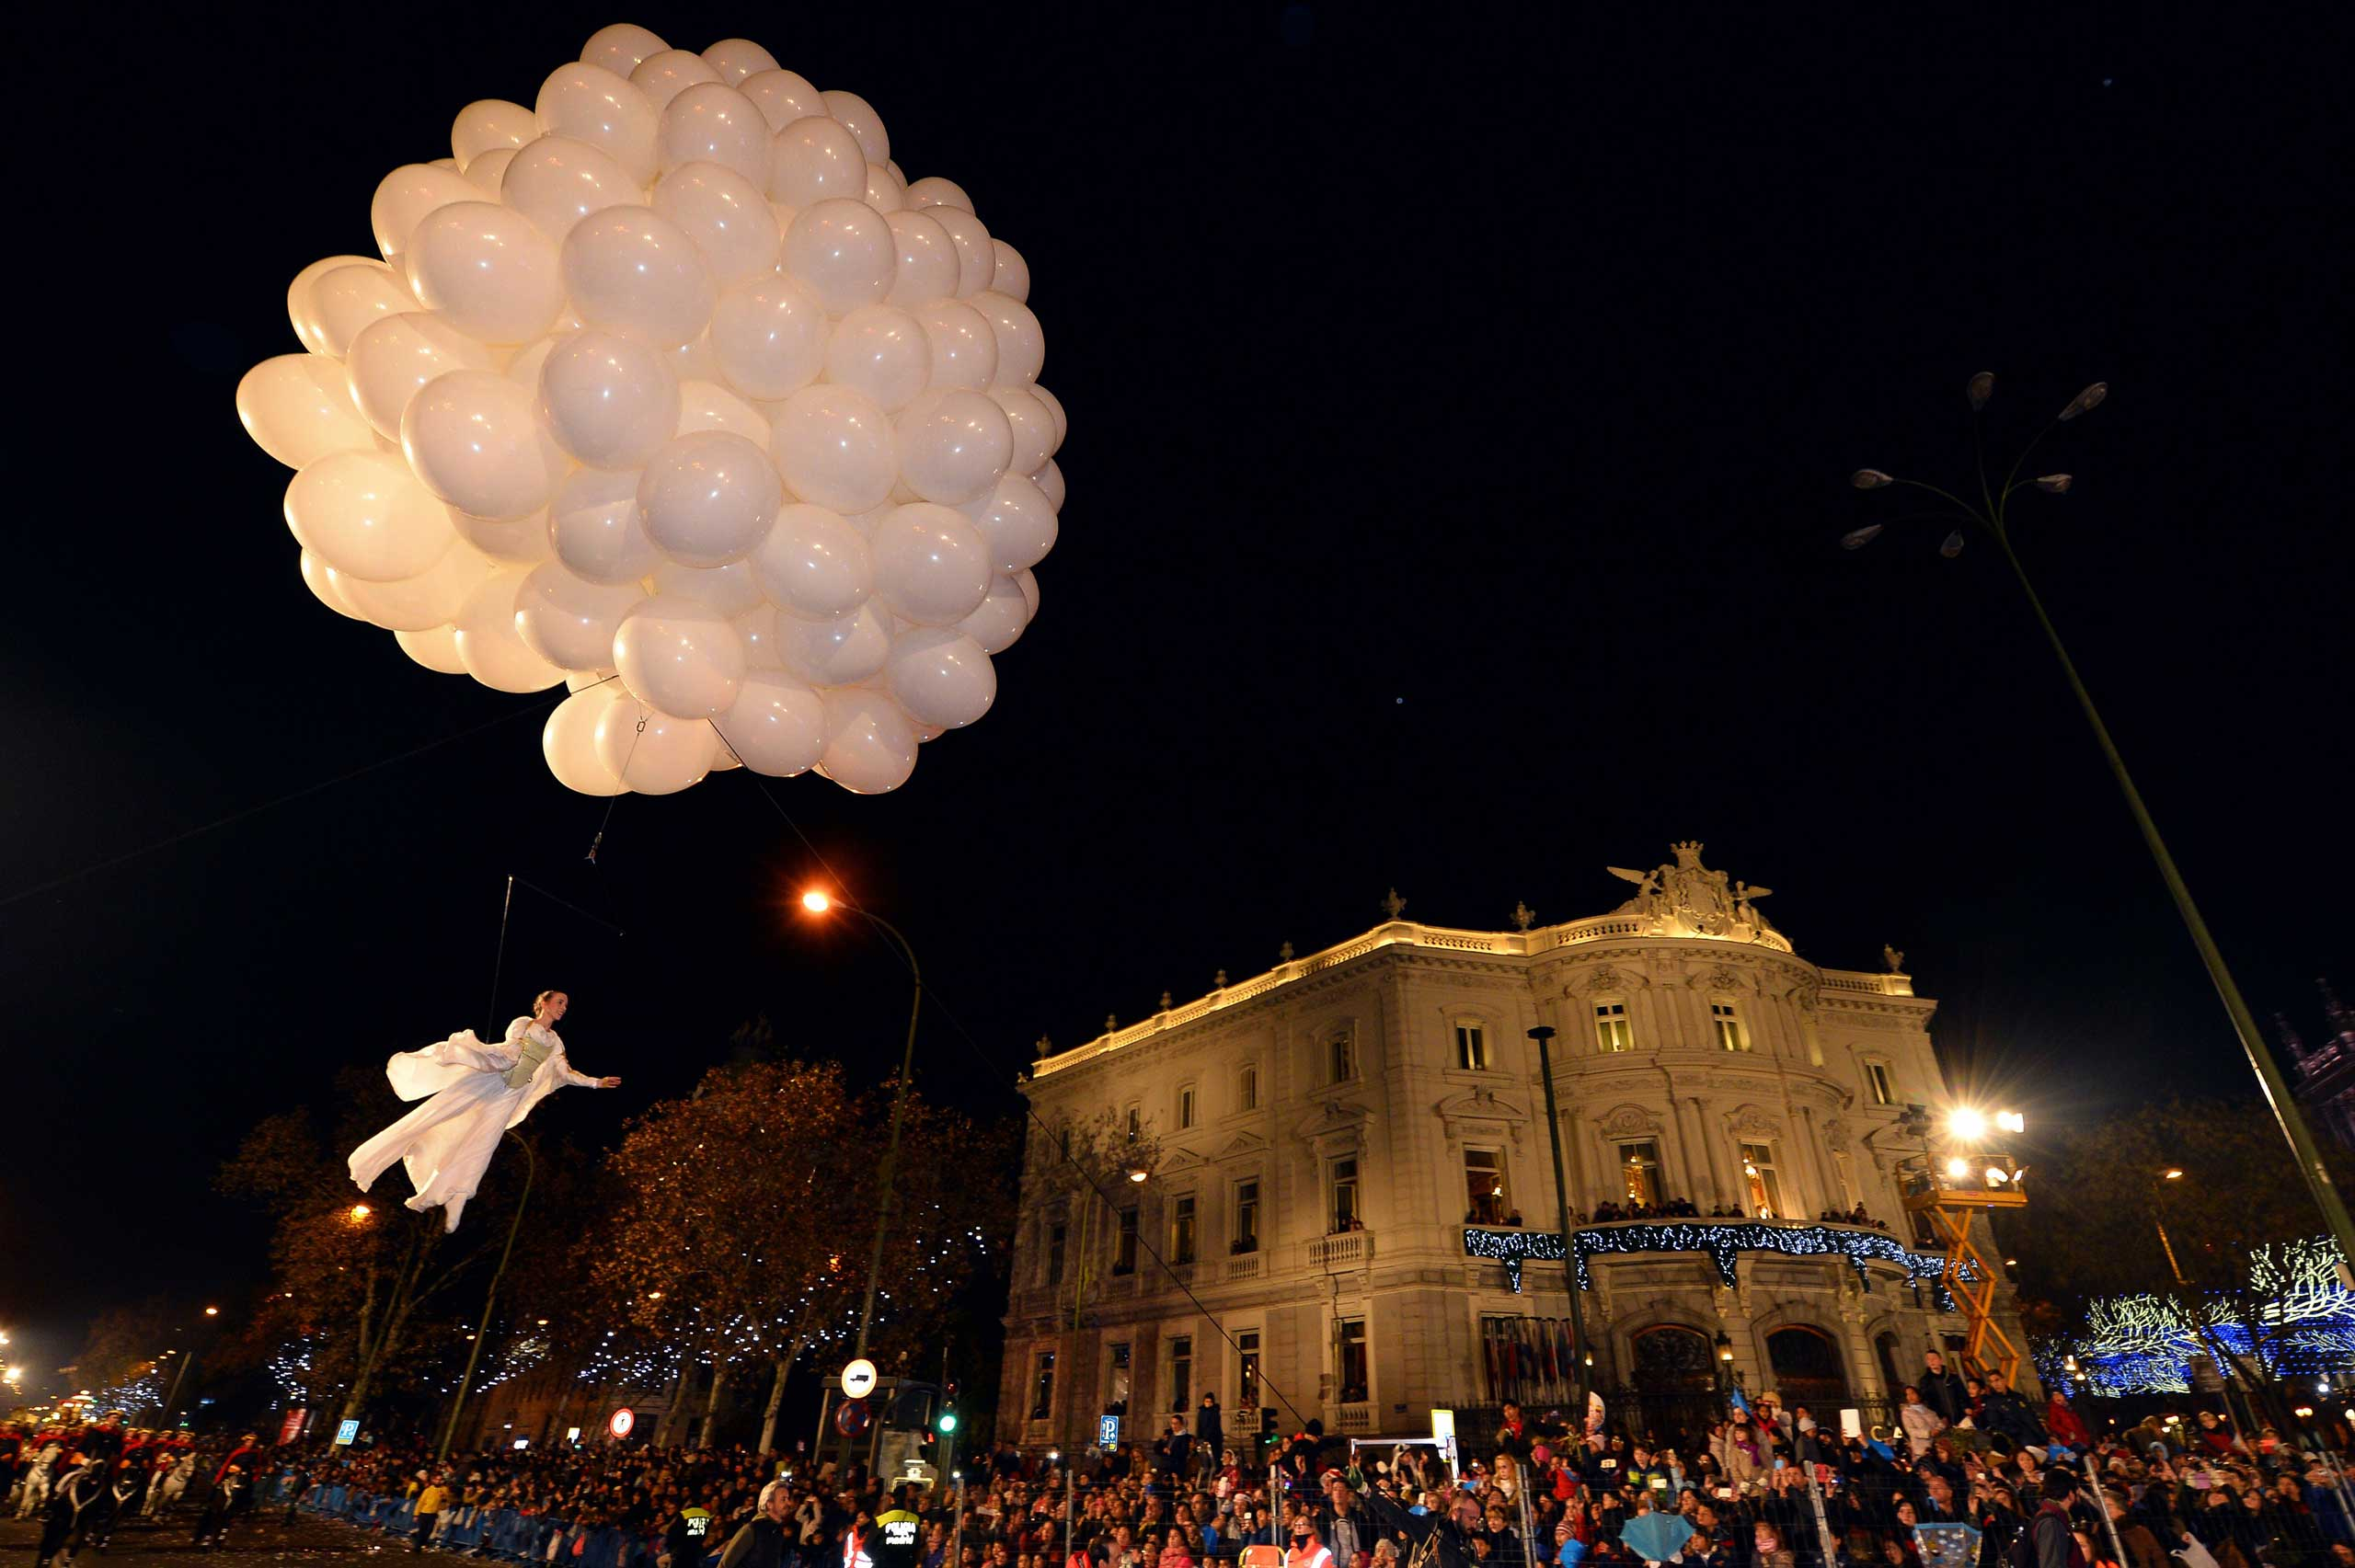 An artist performs in the air with balloons at Cibeles Square during the Three Kings parade in Madrid on Jan. 5, 2015.